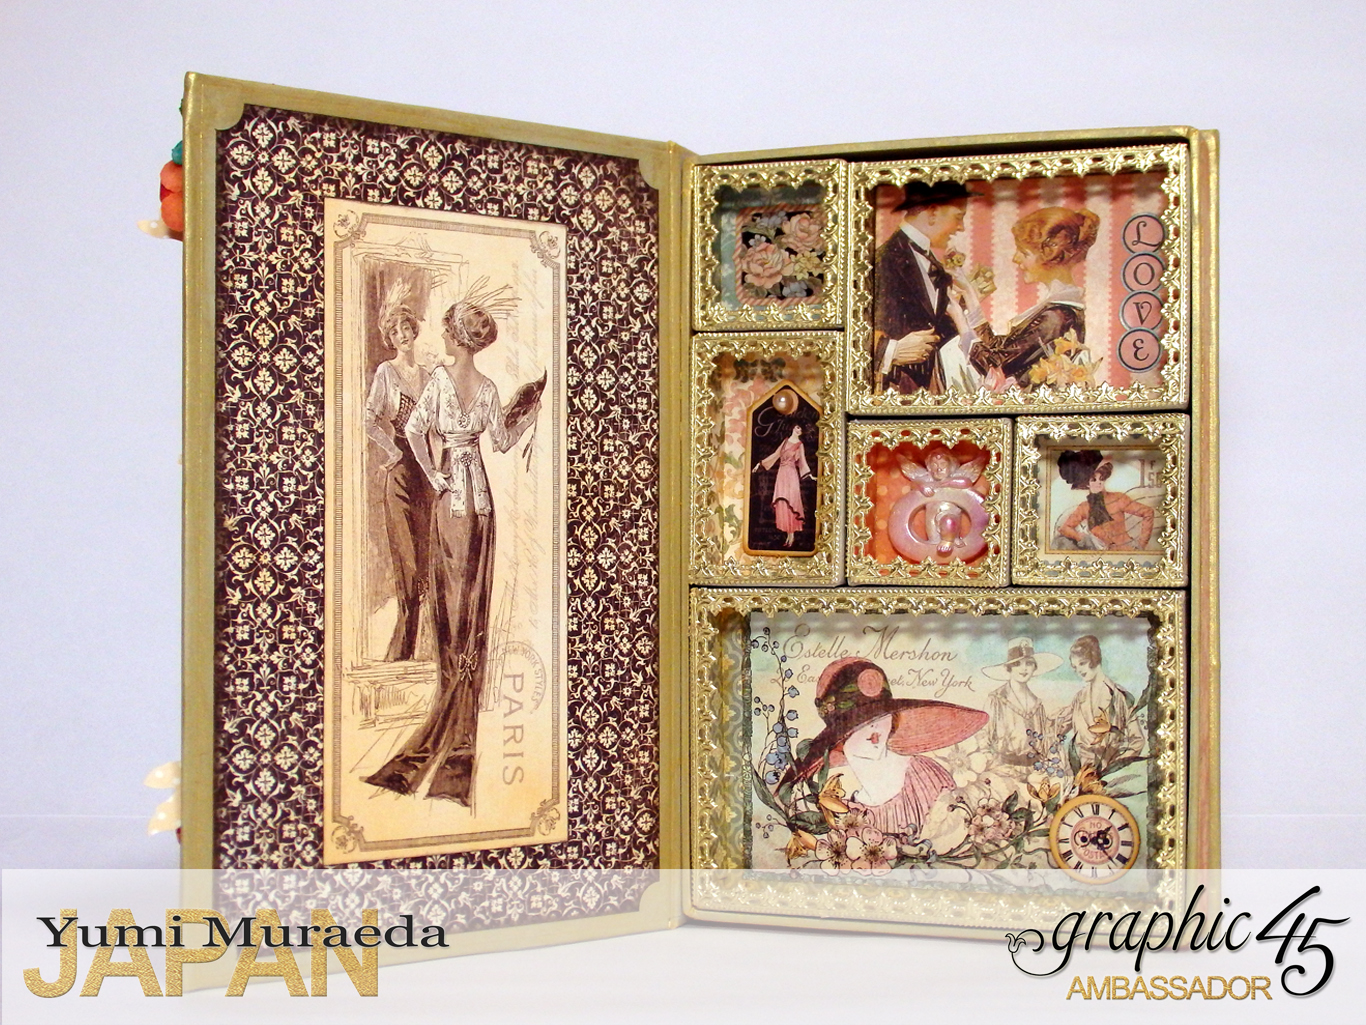 2My Lady Accesoory Case, A Ladies Diary, by Yumi Muraeda, Product by Graphic 45jpg